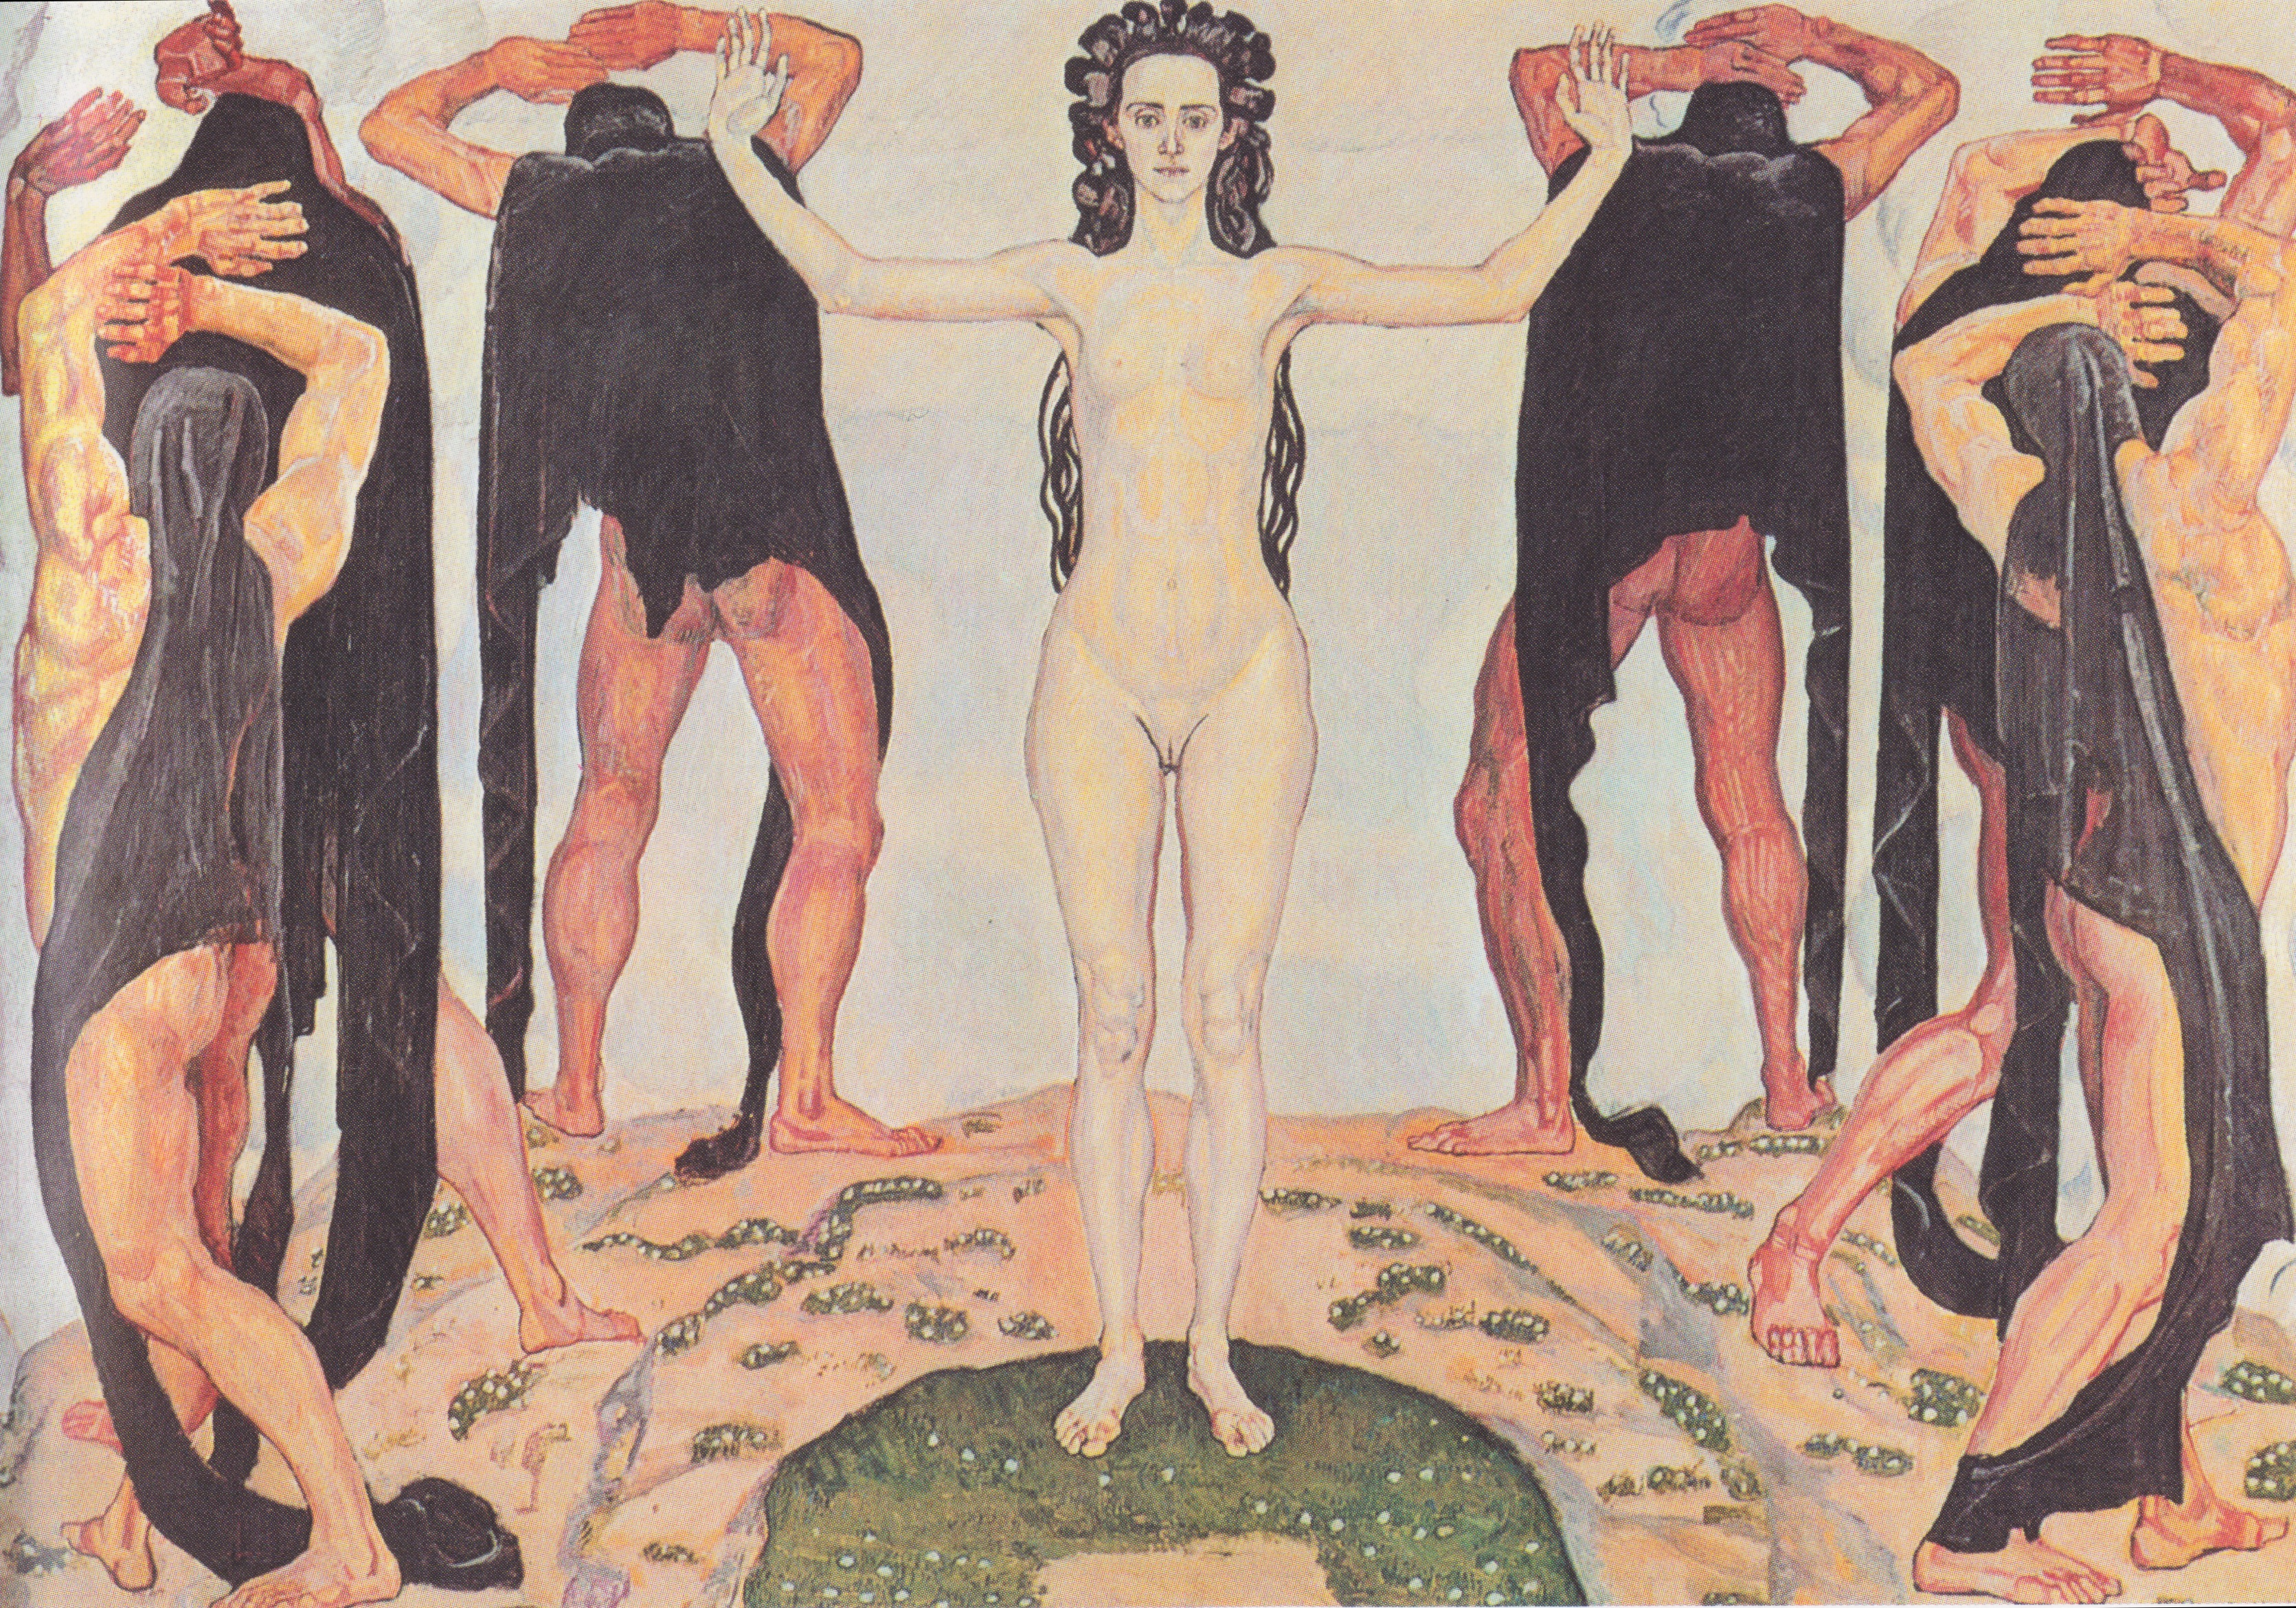 https://upload.wikimedia.org/wikipedia/commons/a/a2/Ferdinand_Hodler_-_Die_Wahrheit_II_-_1903.jpeg